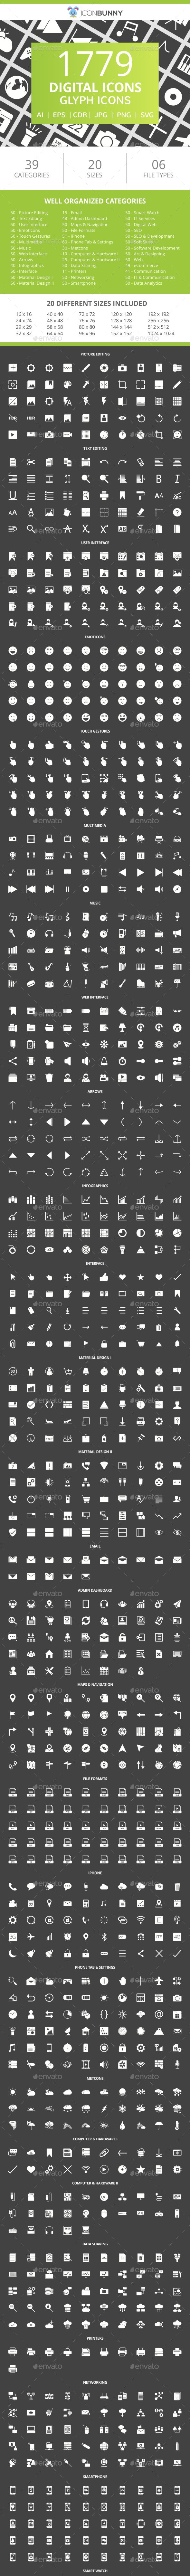 1779 Digital Glyph Inverted Icons - Icons